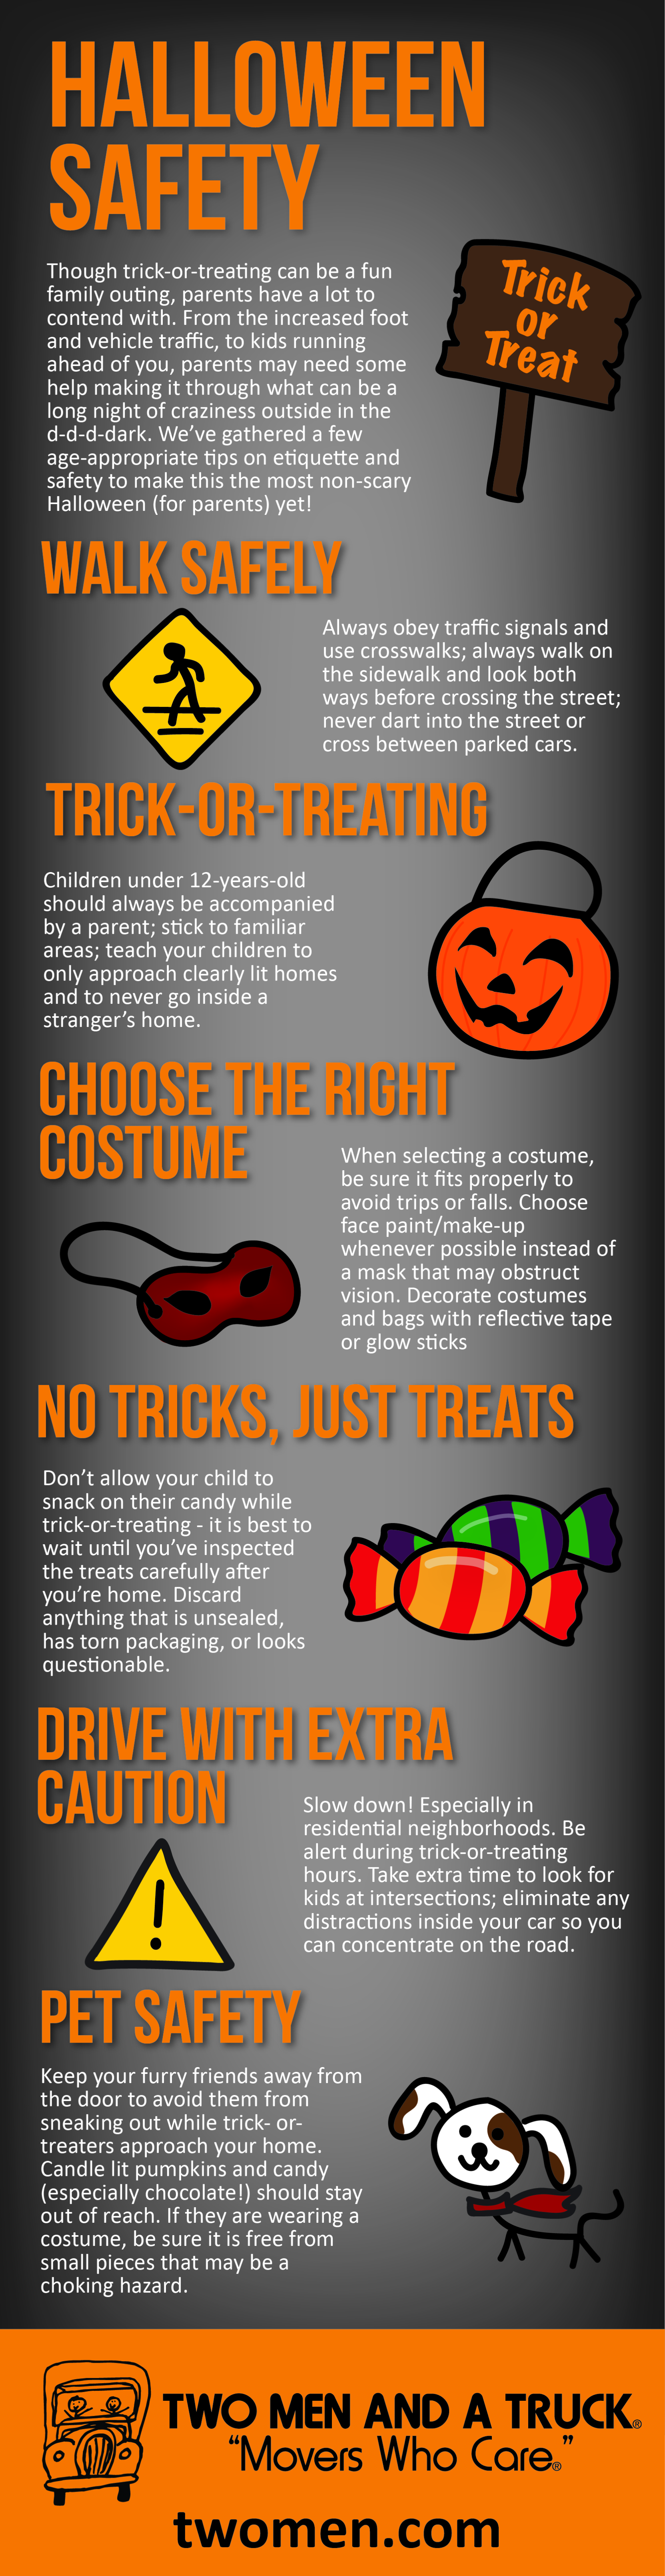 Top Safety Tips For Your Family This Halloween